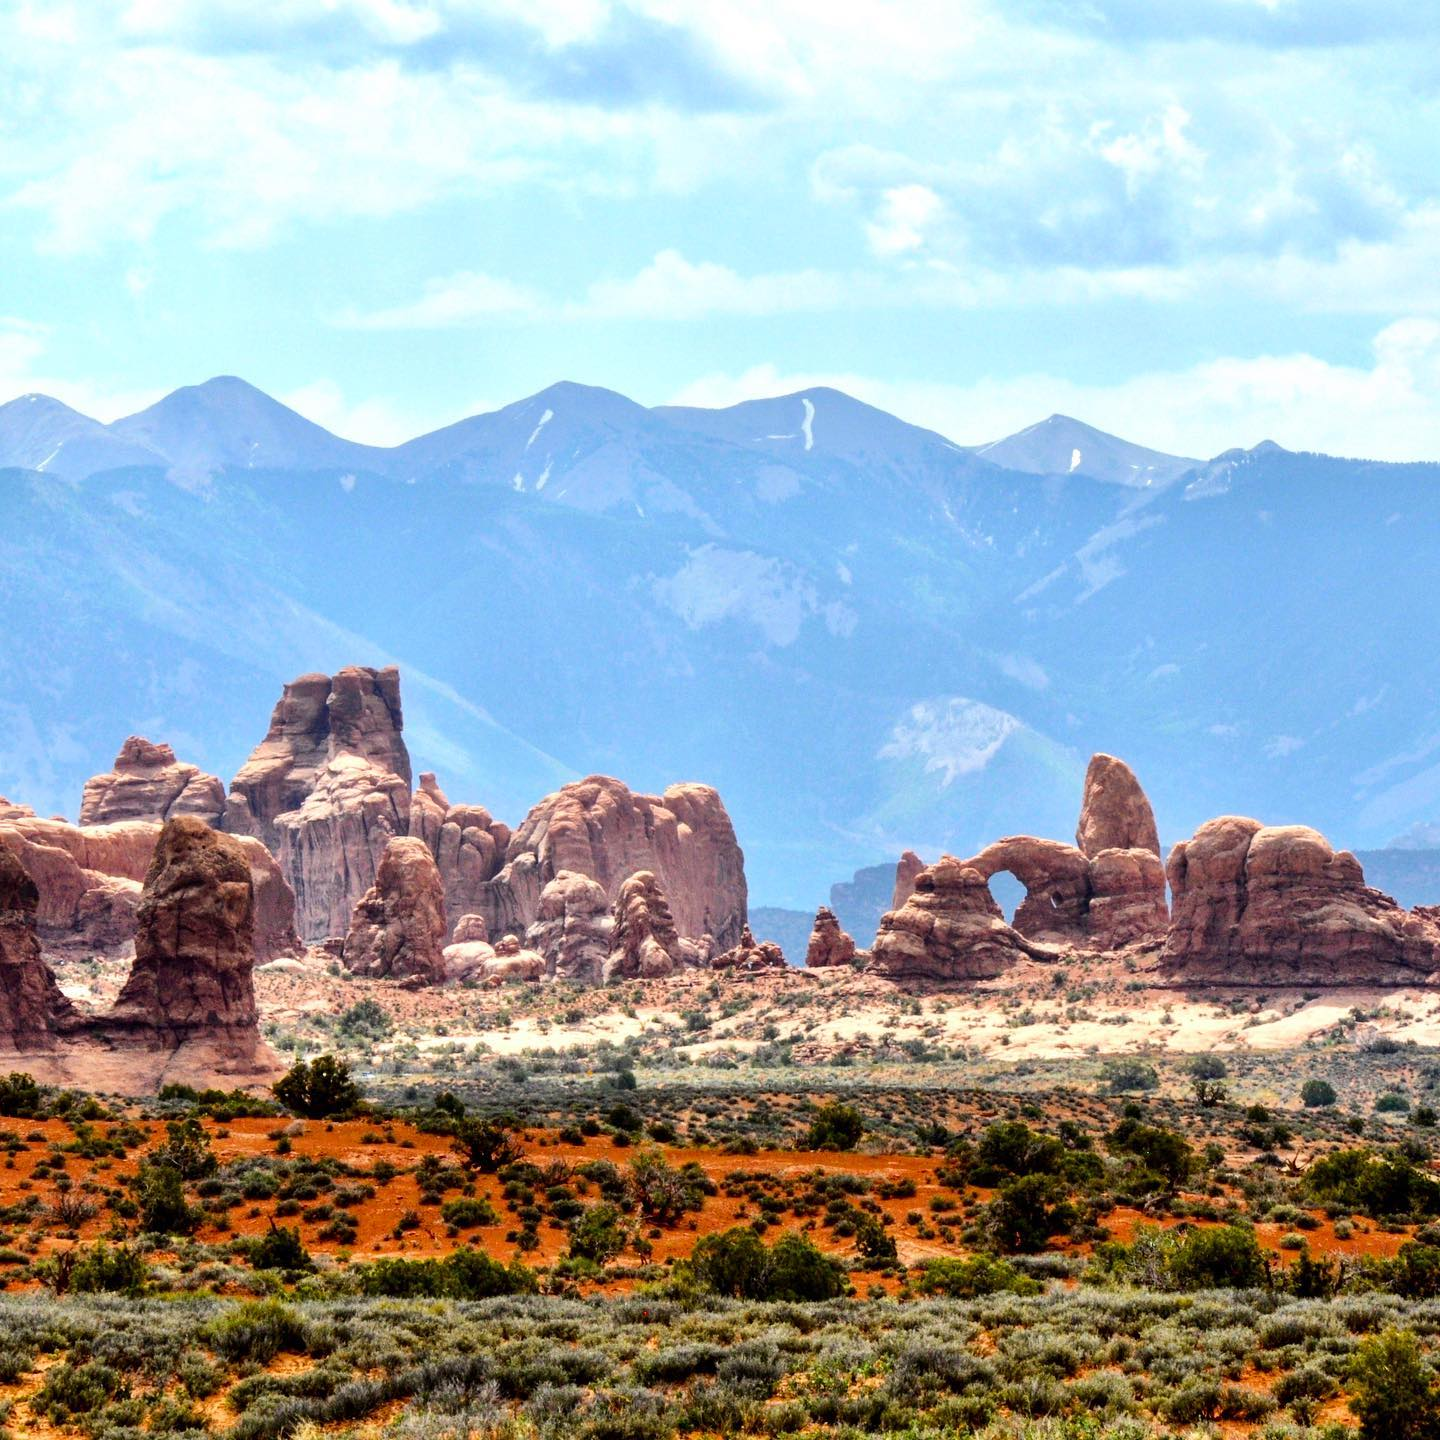 Arches NP, Utah View from Arches Scenic Dr towards Windows District.   #usa #us #usatravel #usatravels #usareisen #usatrip #usaaddicted #usaroadtrip #utah #utahunique #archesnationalpark #landscape #landschaftsfotografie #landscapephotography #redrocks #naturelovers #nature_perfection #travelcommunity #utahgram #beautifulnature #travelutah #travelpics #reisefotografie #natureaddict #planetearth #outdoorlovers #travelblogger #reiseblogger #traveling #travelstoke